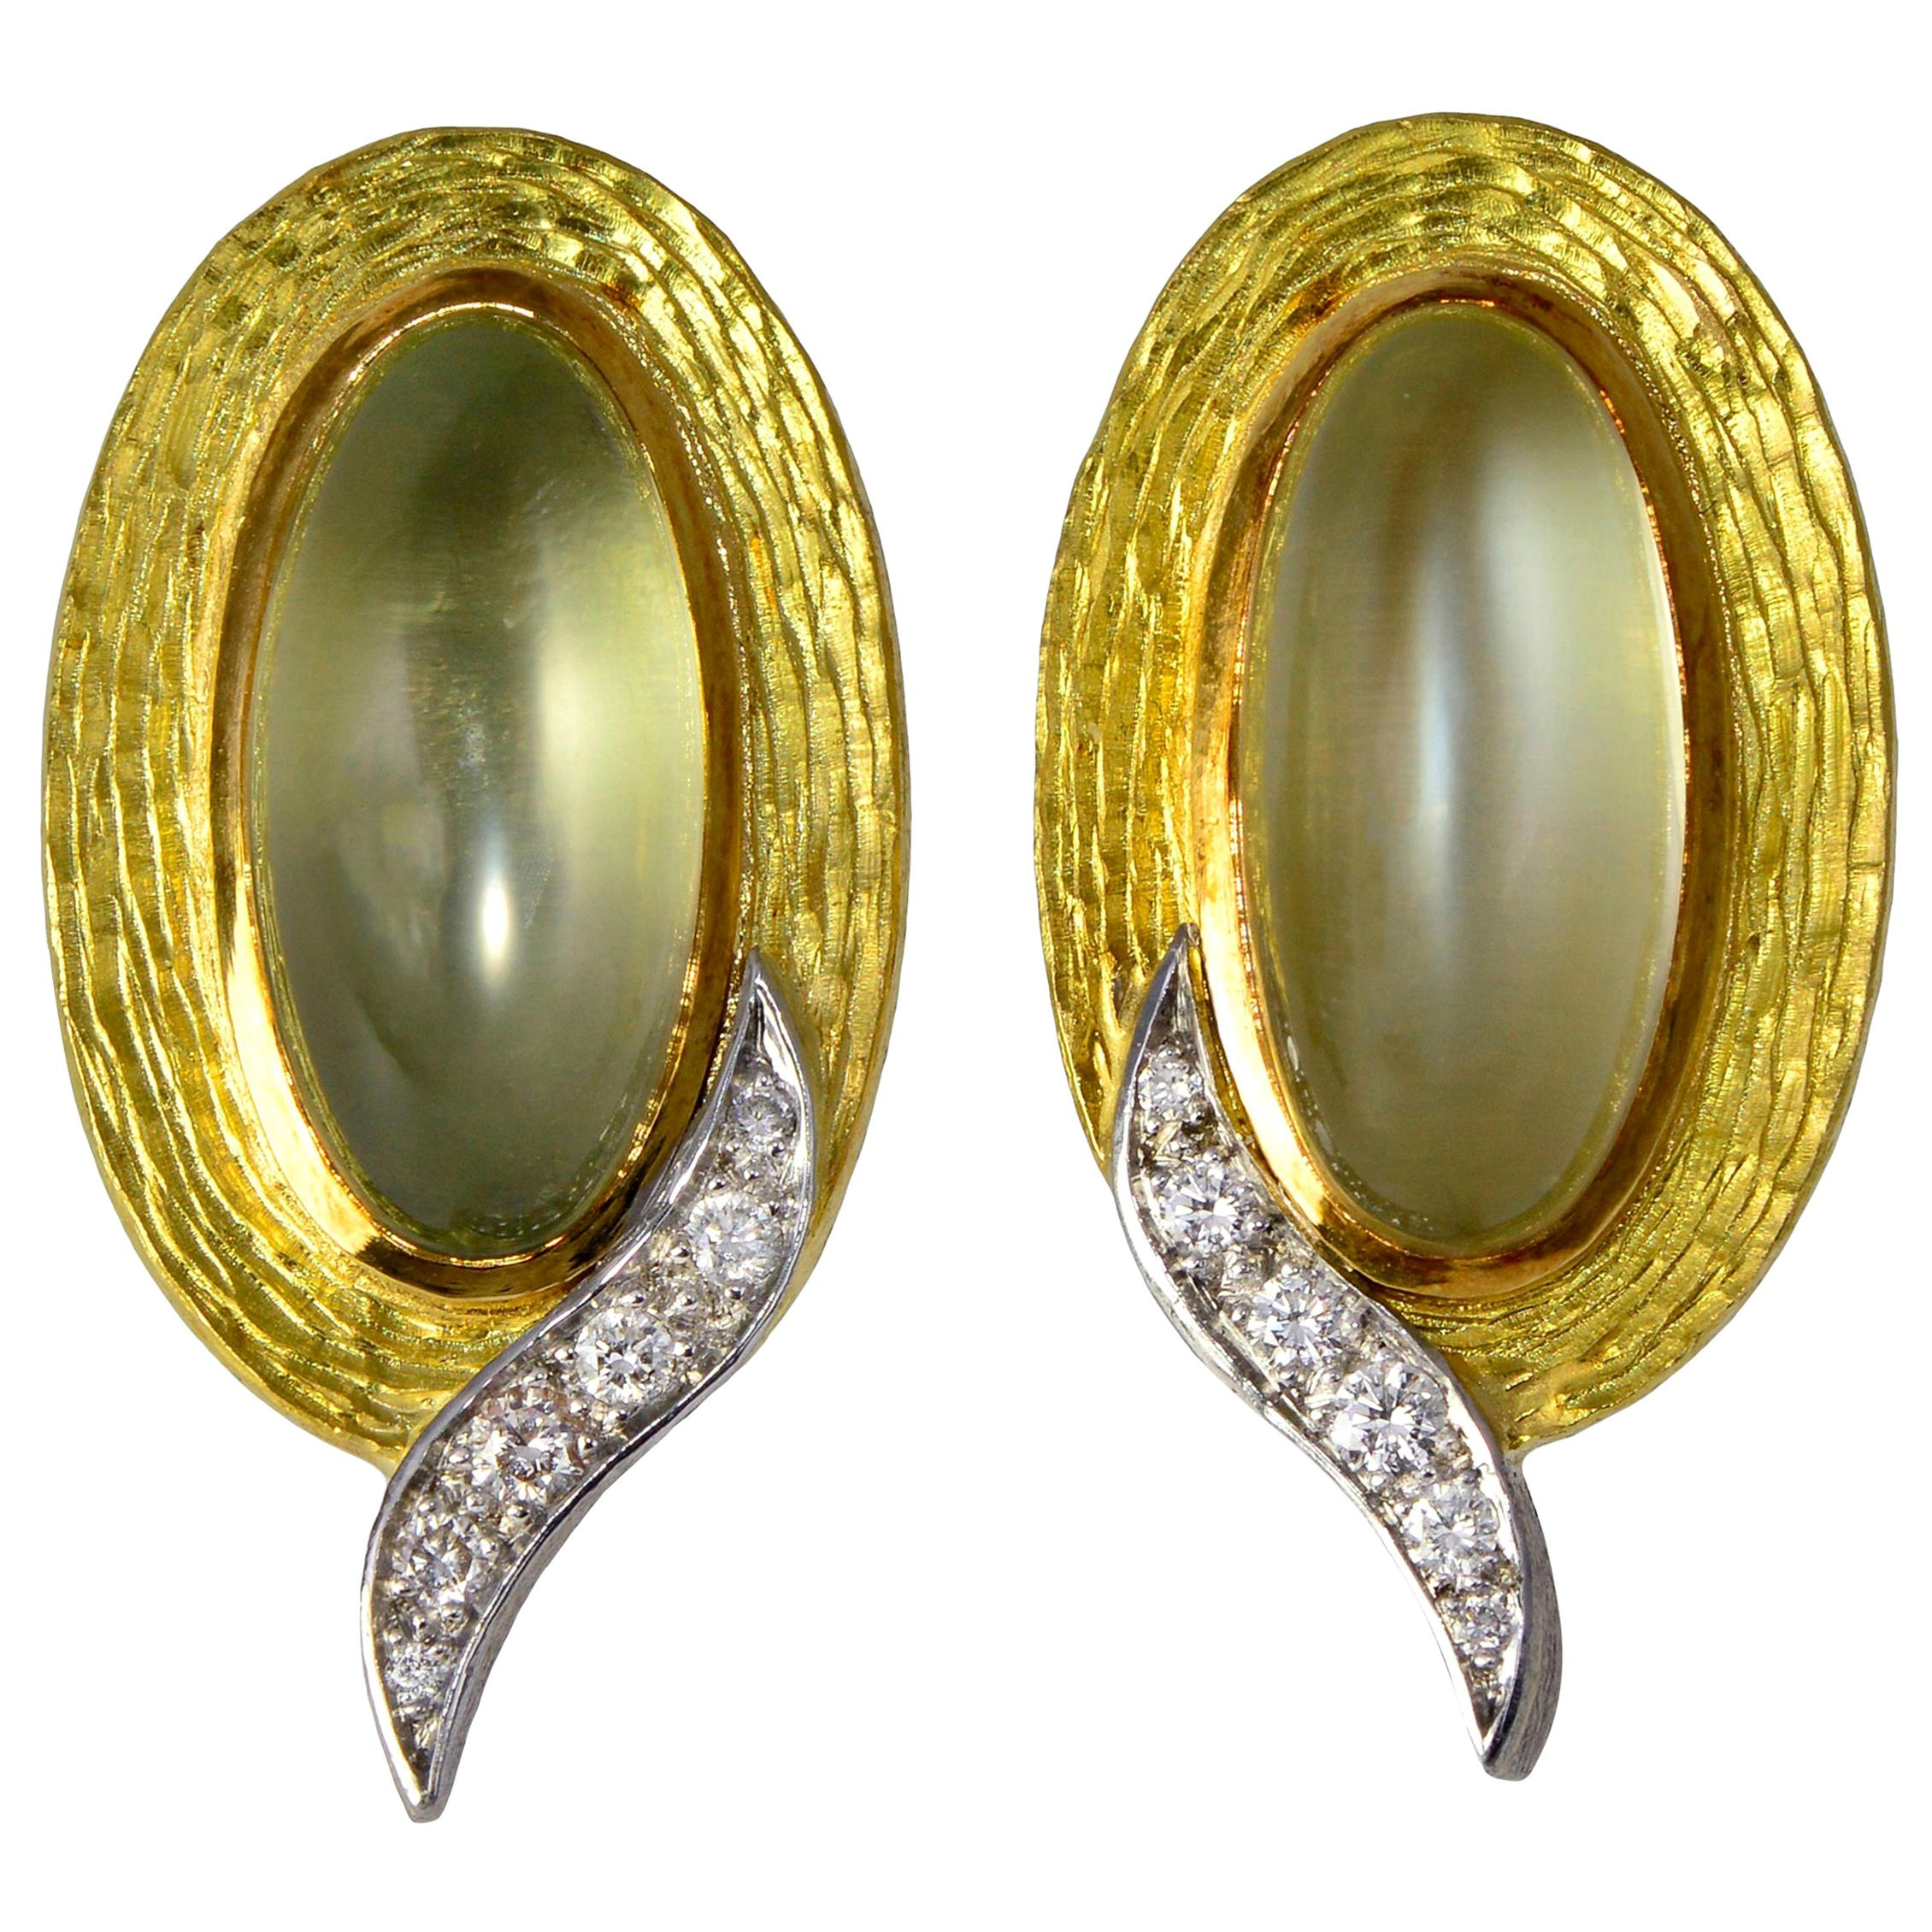 1986 Andrew Grima, Moonstone, Diamond and Yellow and White Gold Earclips